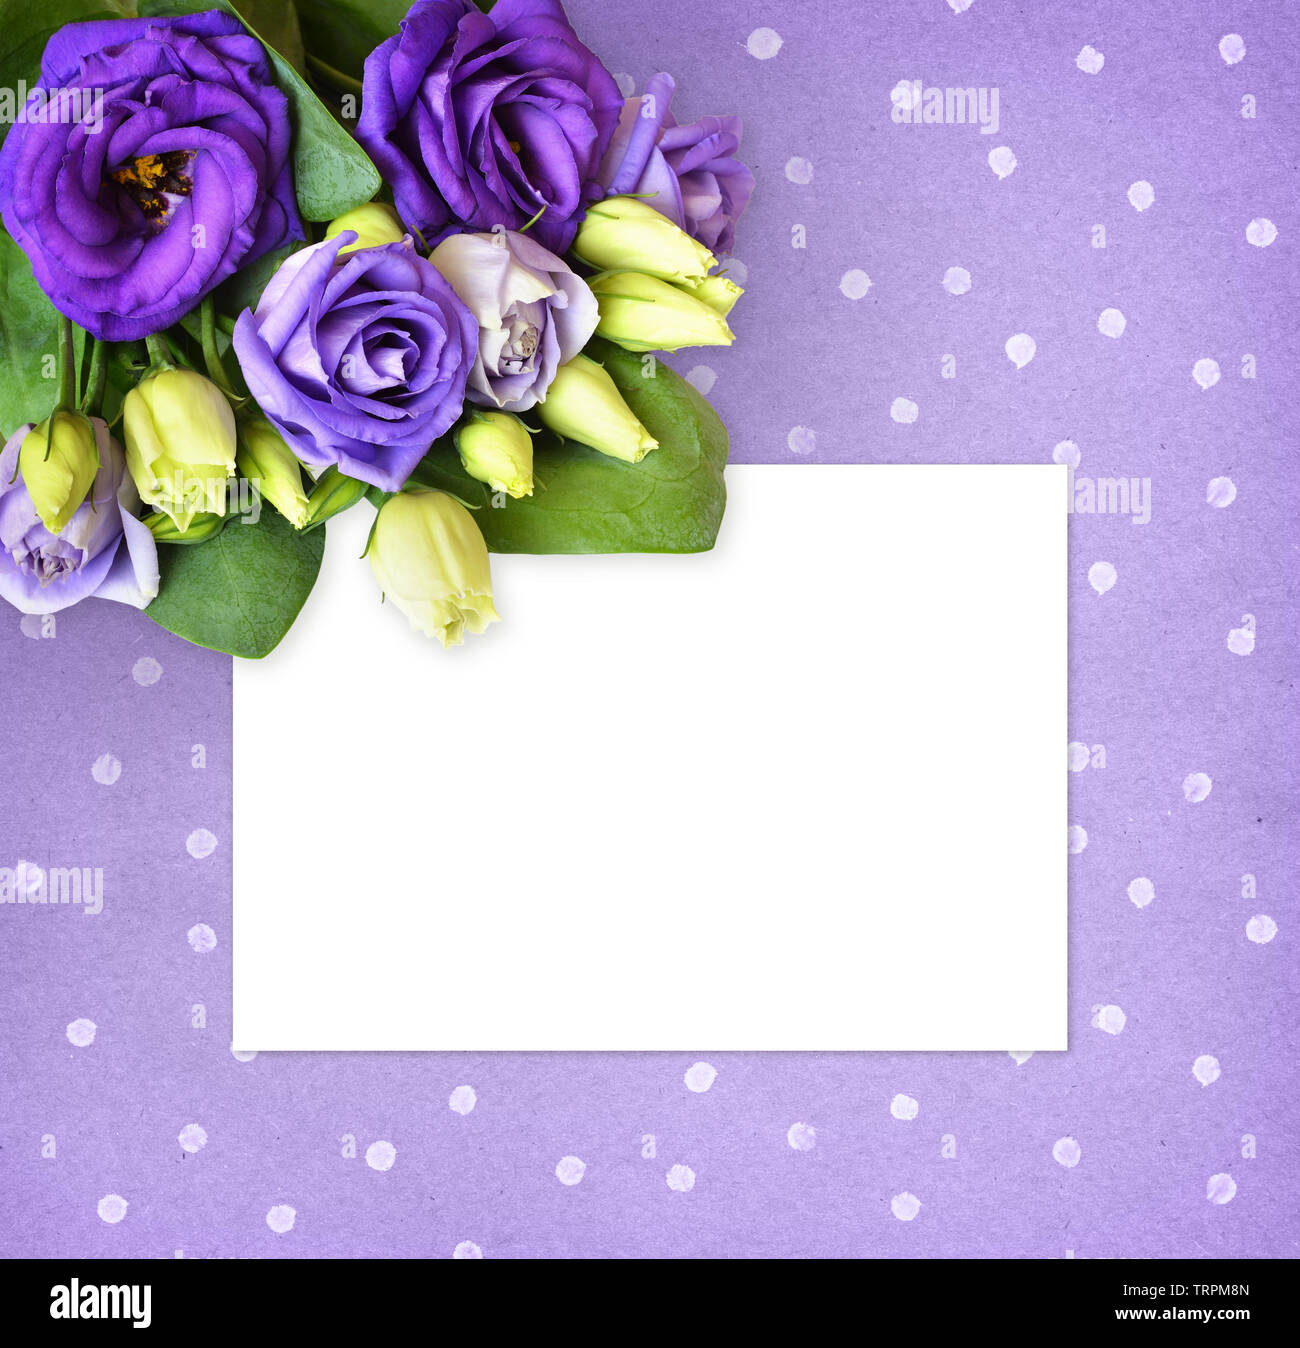 Corner arrangement with purple lisianthus flowers and a white card on polka dot paper background. Flat lay. Top view. - Stock Image